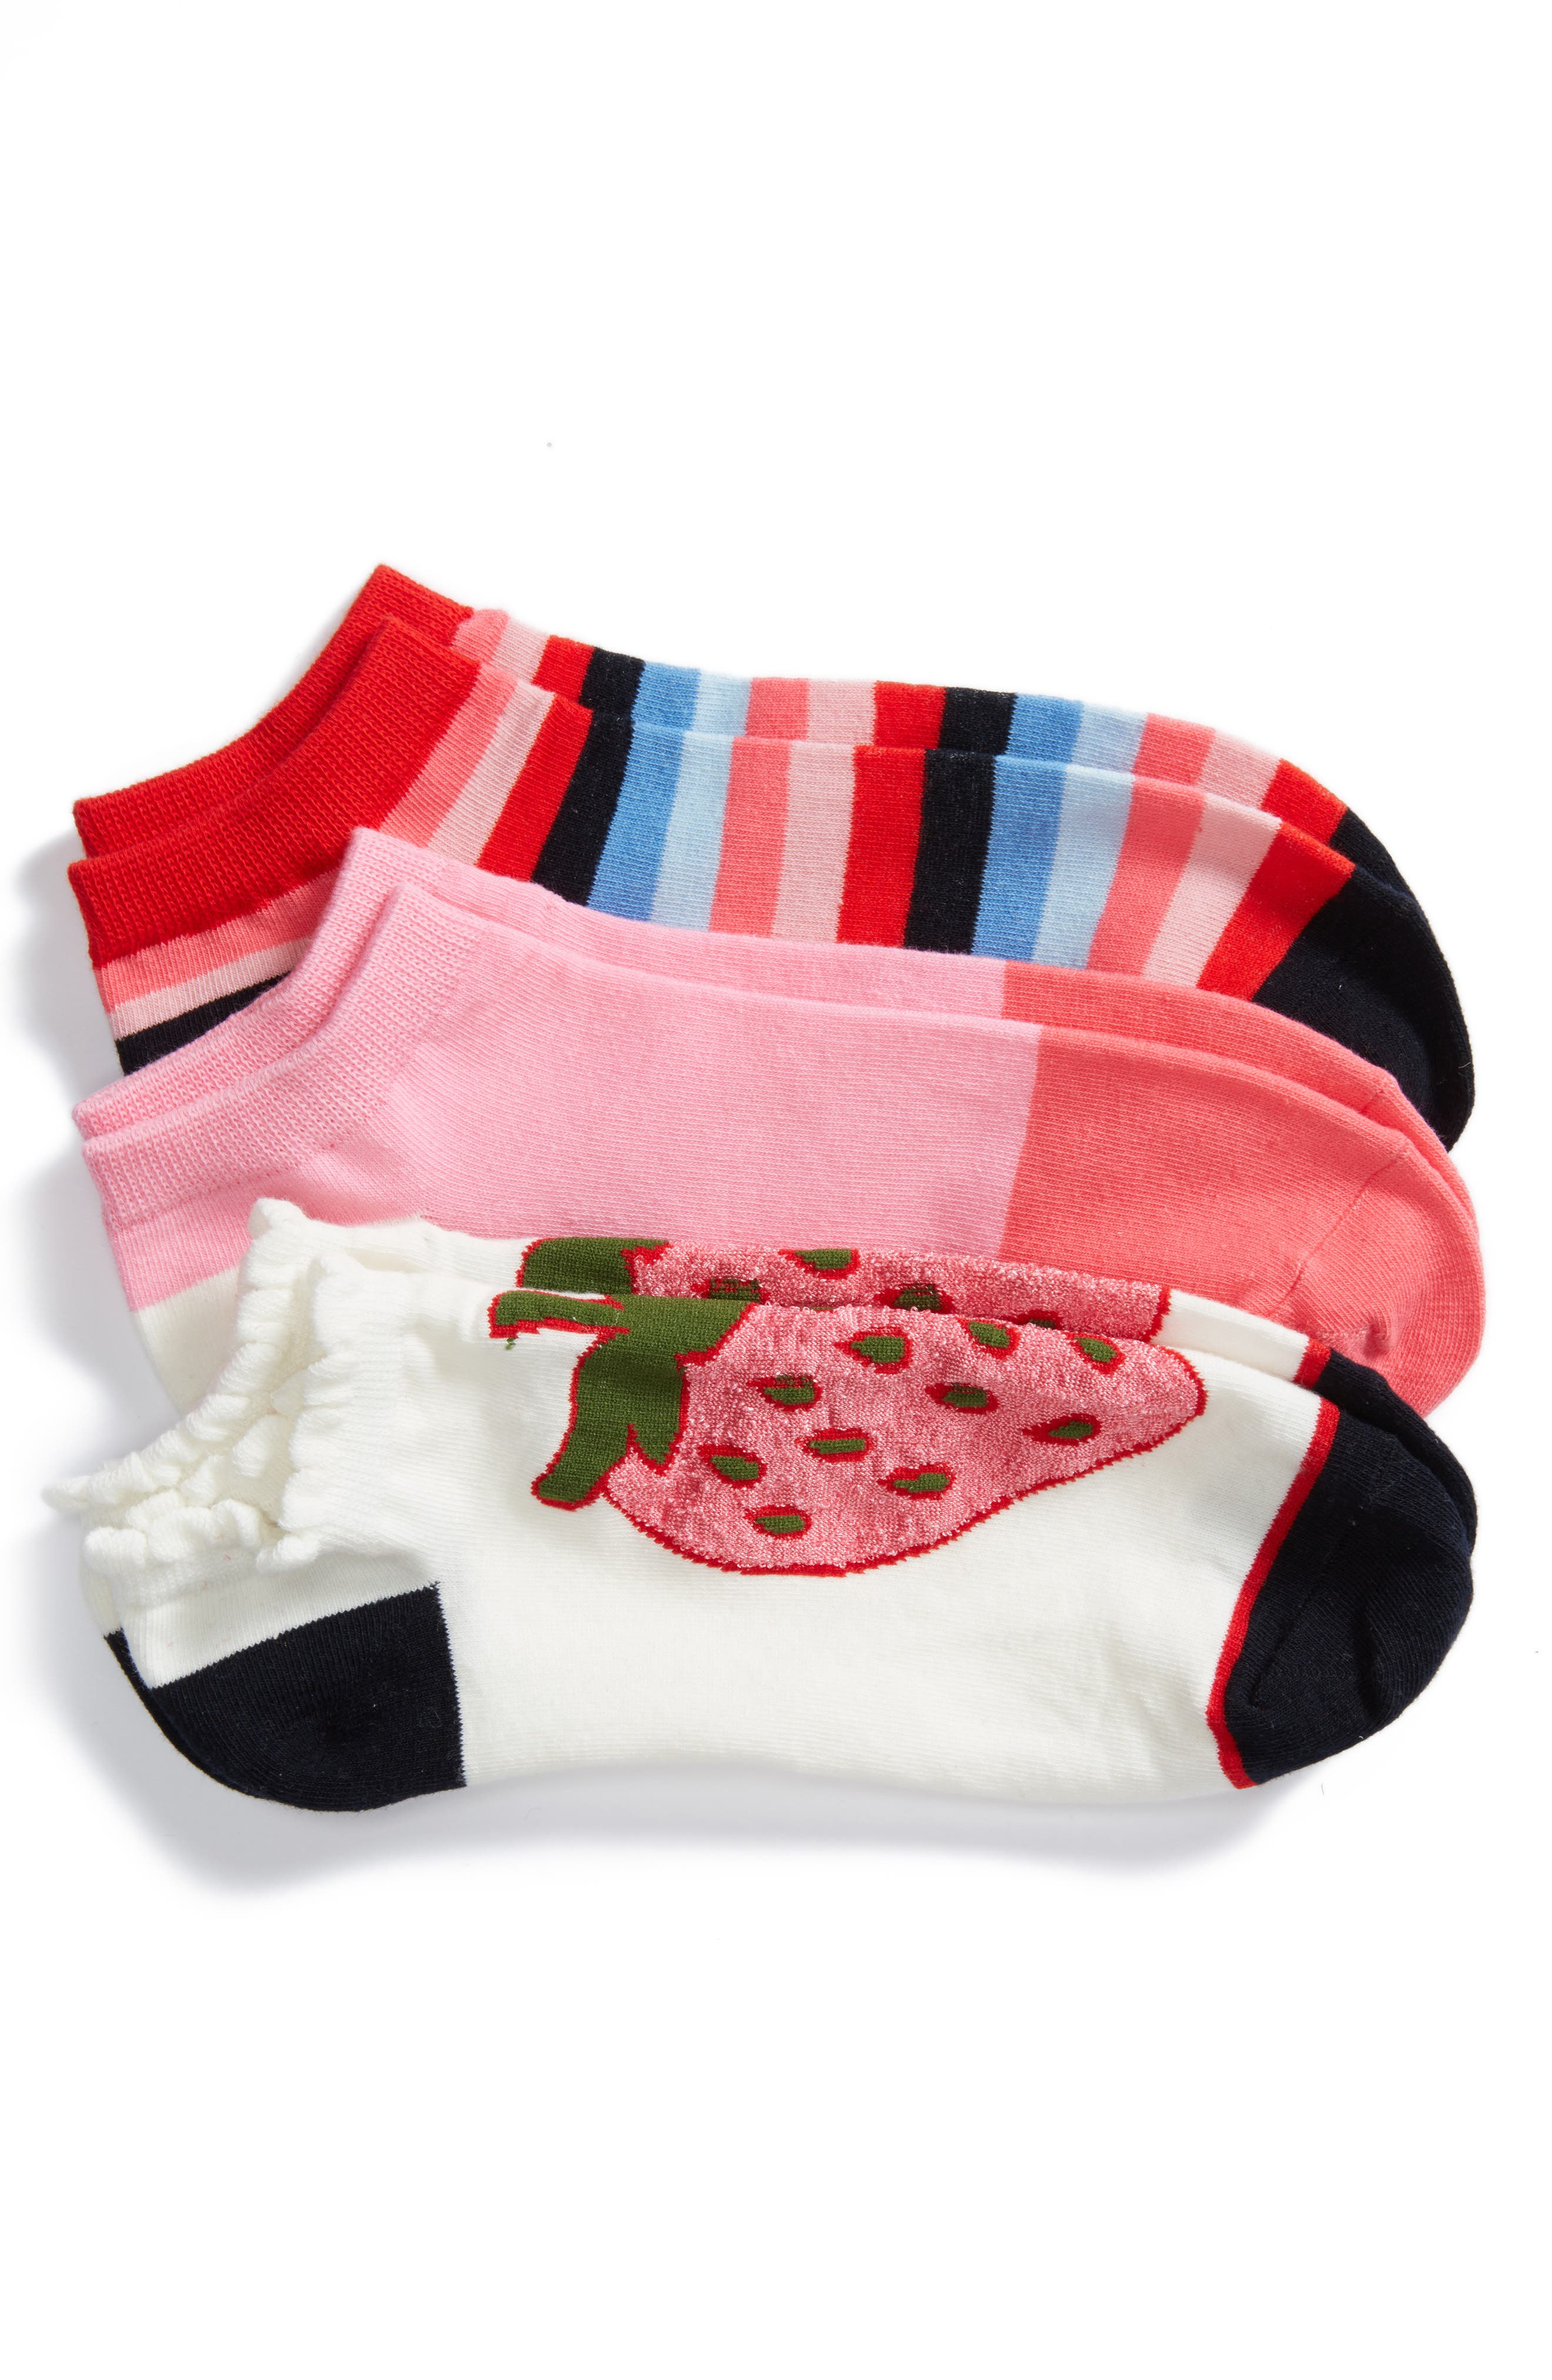 strawberry 3-pack no-show socks,                             Main thumbnail 1, color,                             White